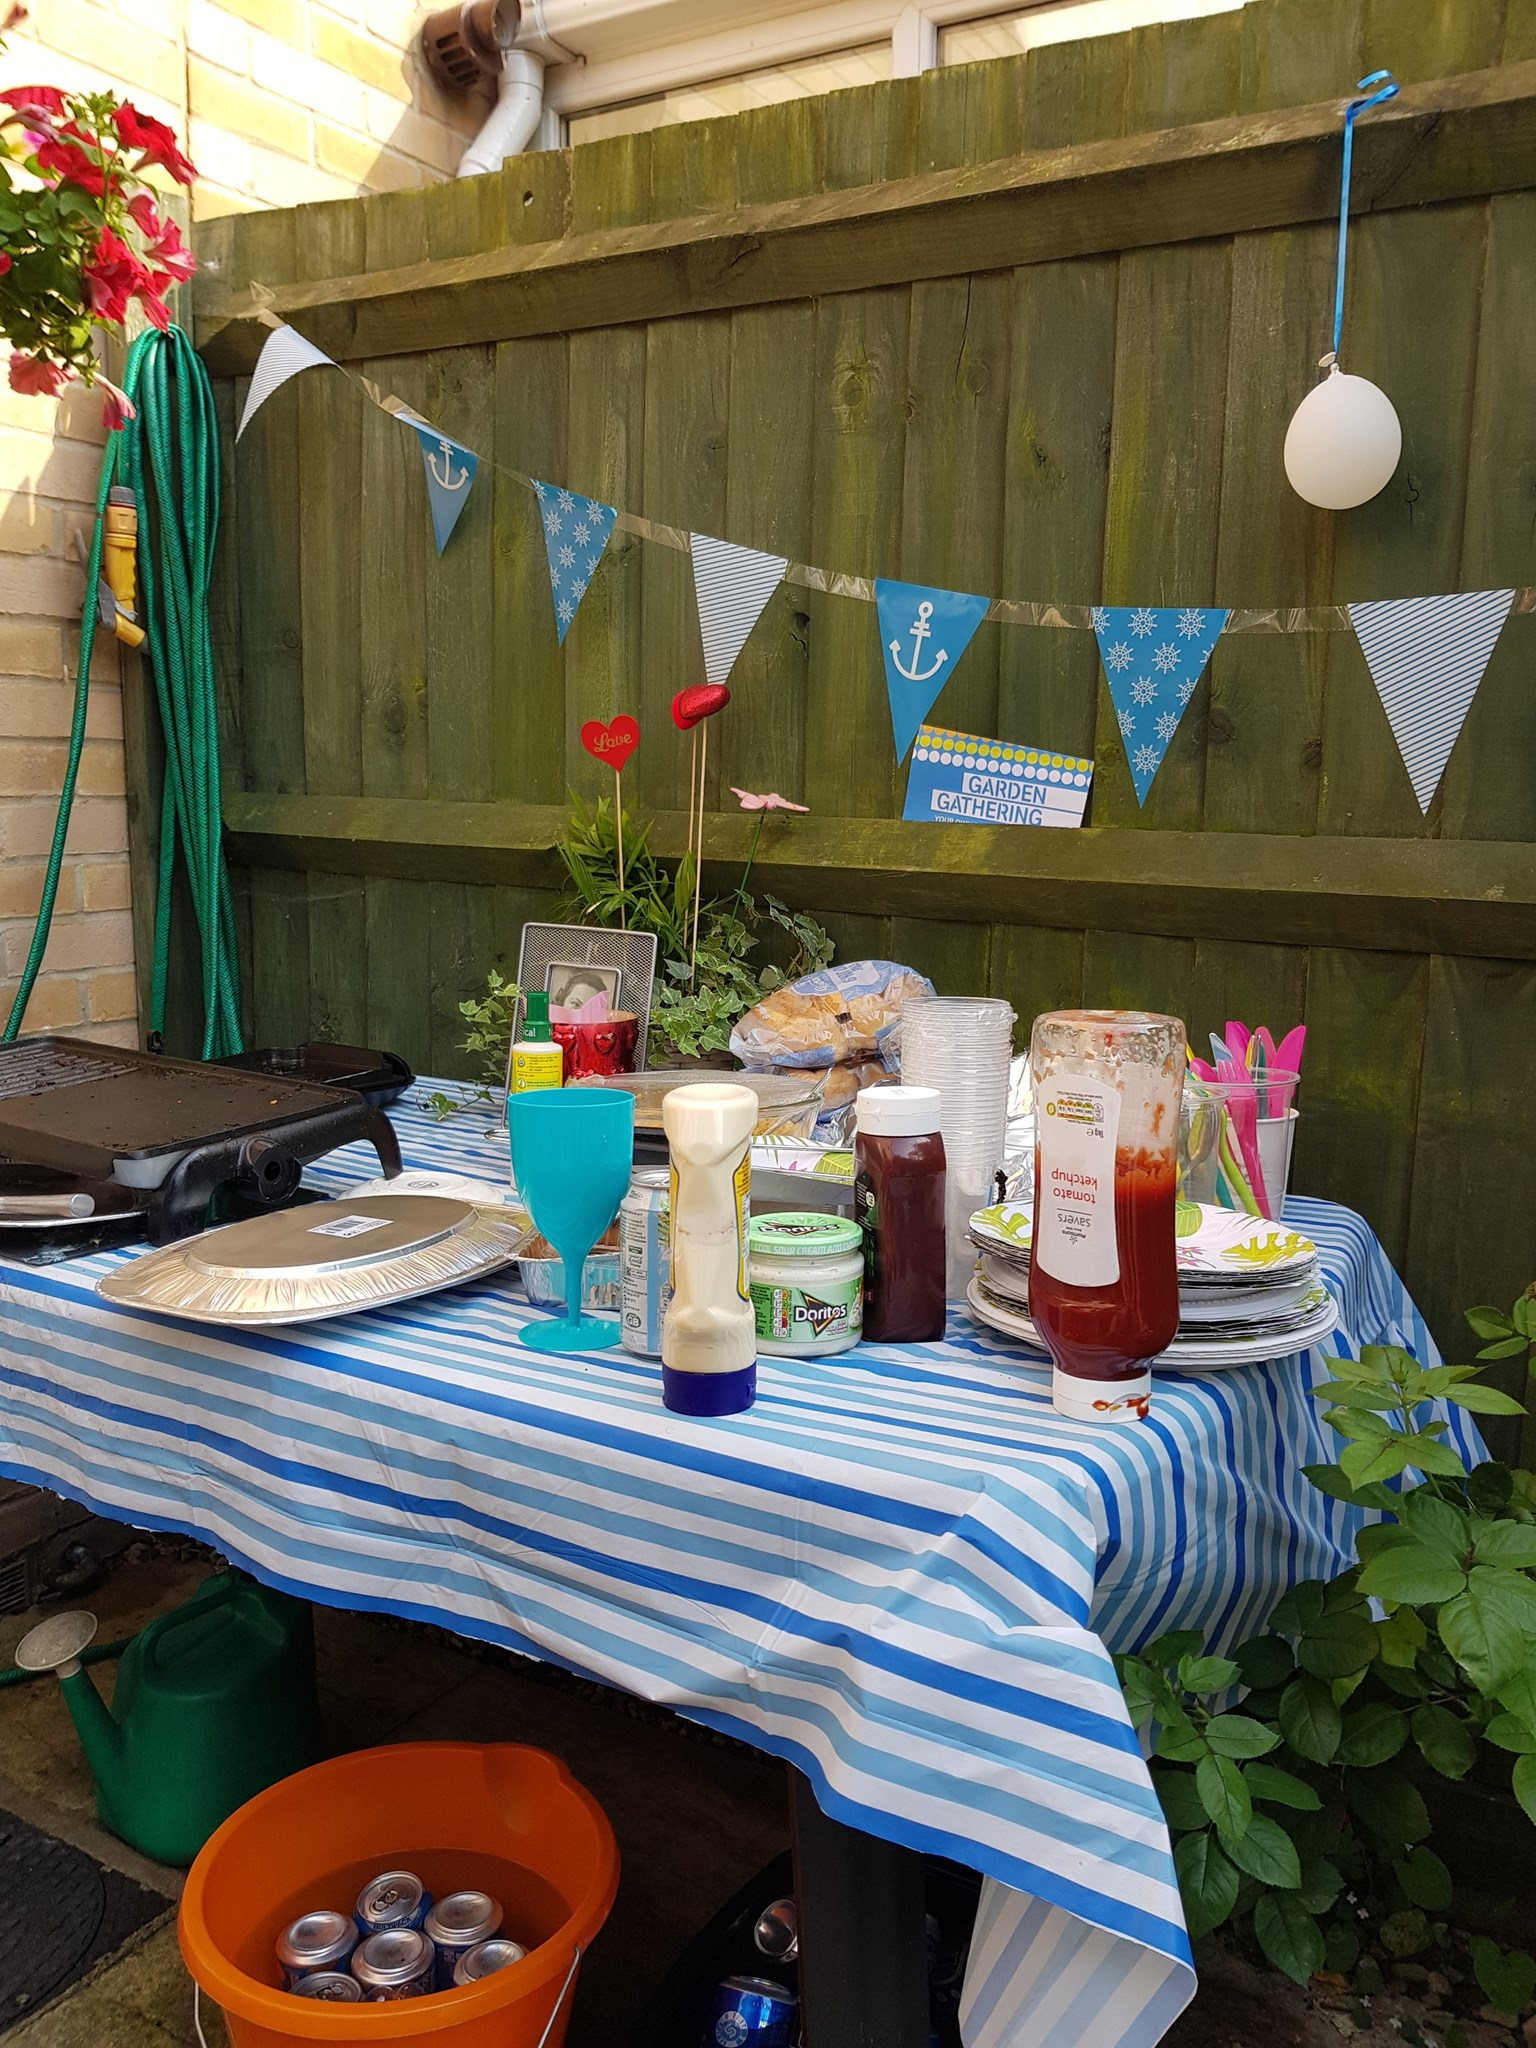 Garden Gathering Party at my house yesterday, Sunday 1st July